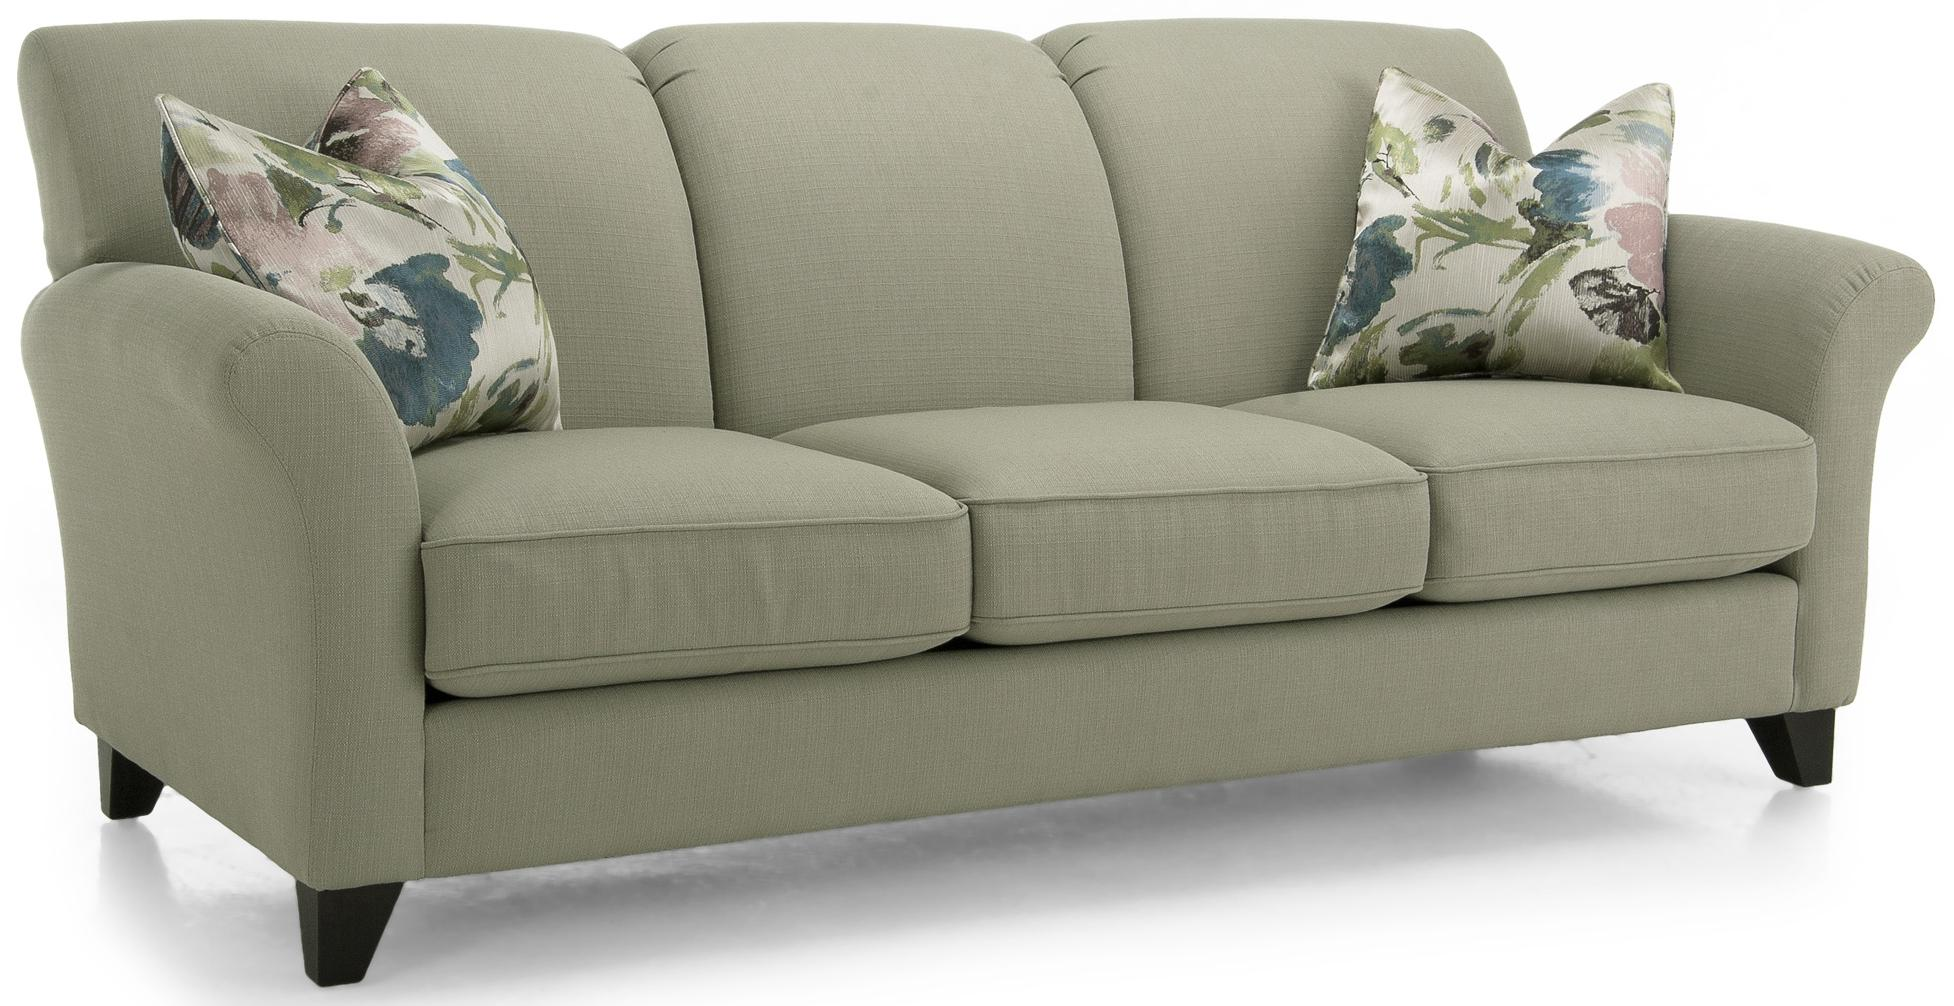 2263 Sofa by Decor-Rest at Reid's Furniture